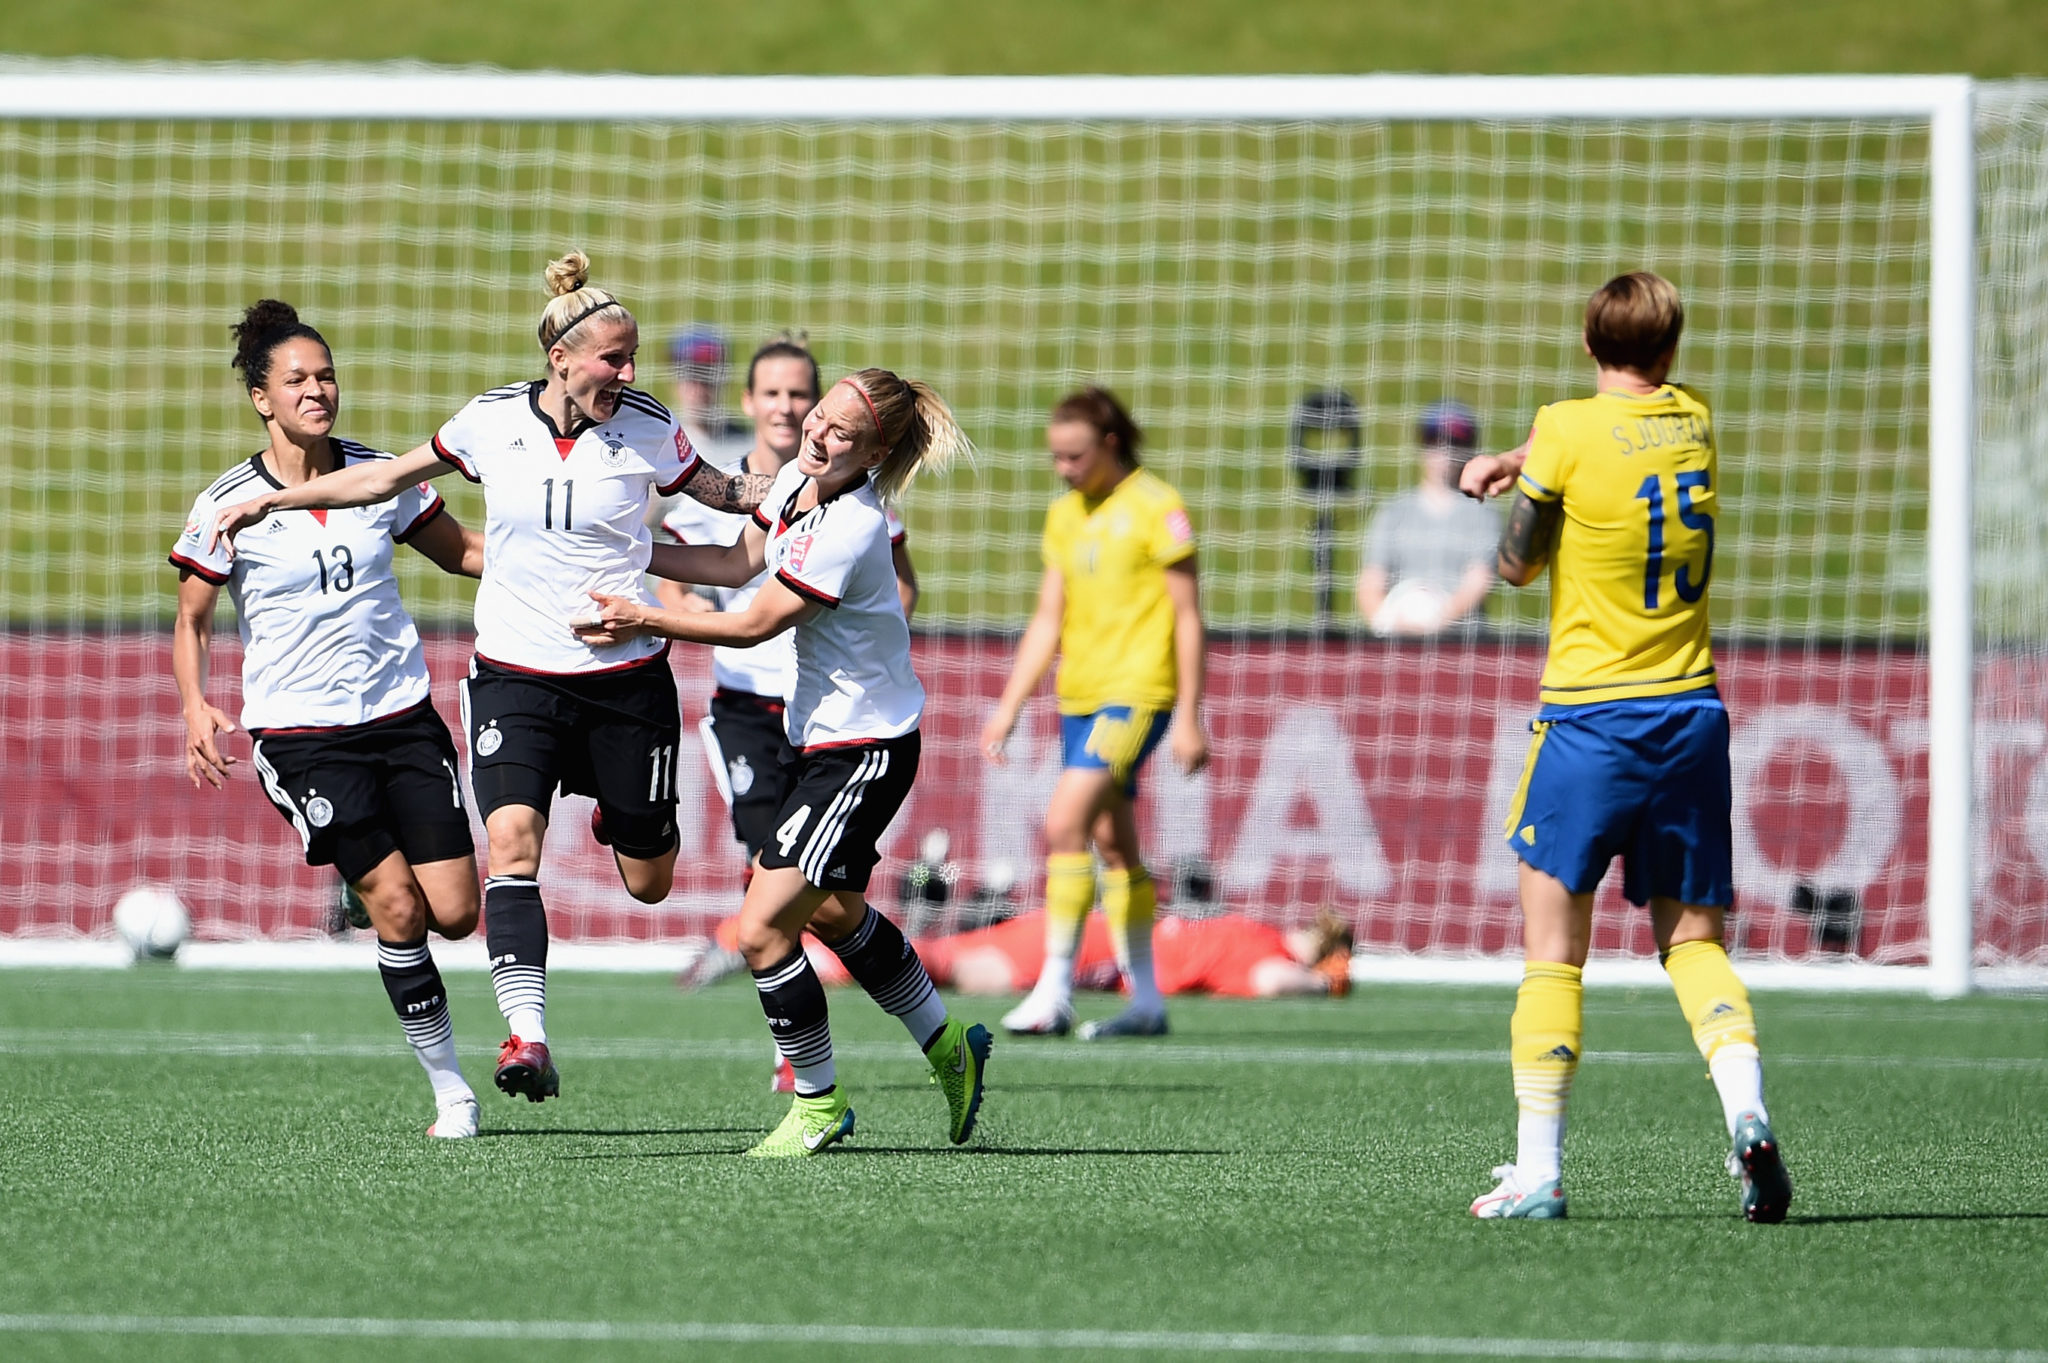 Unlike in the 2015 World Cup (pictured), Sweden managed to escape unbeaten in a competitive match against Germany. (Getty Images)